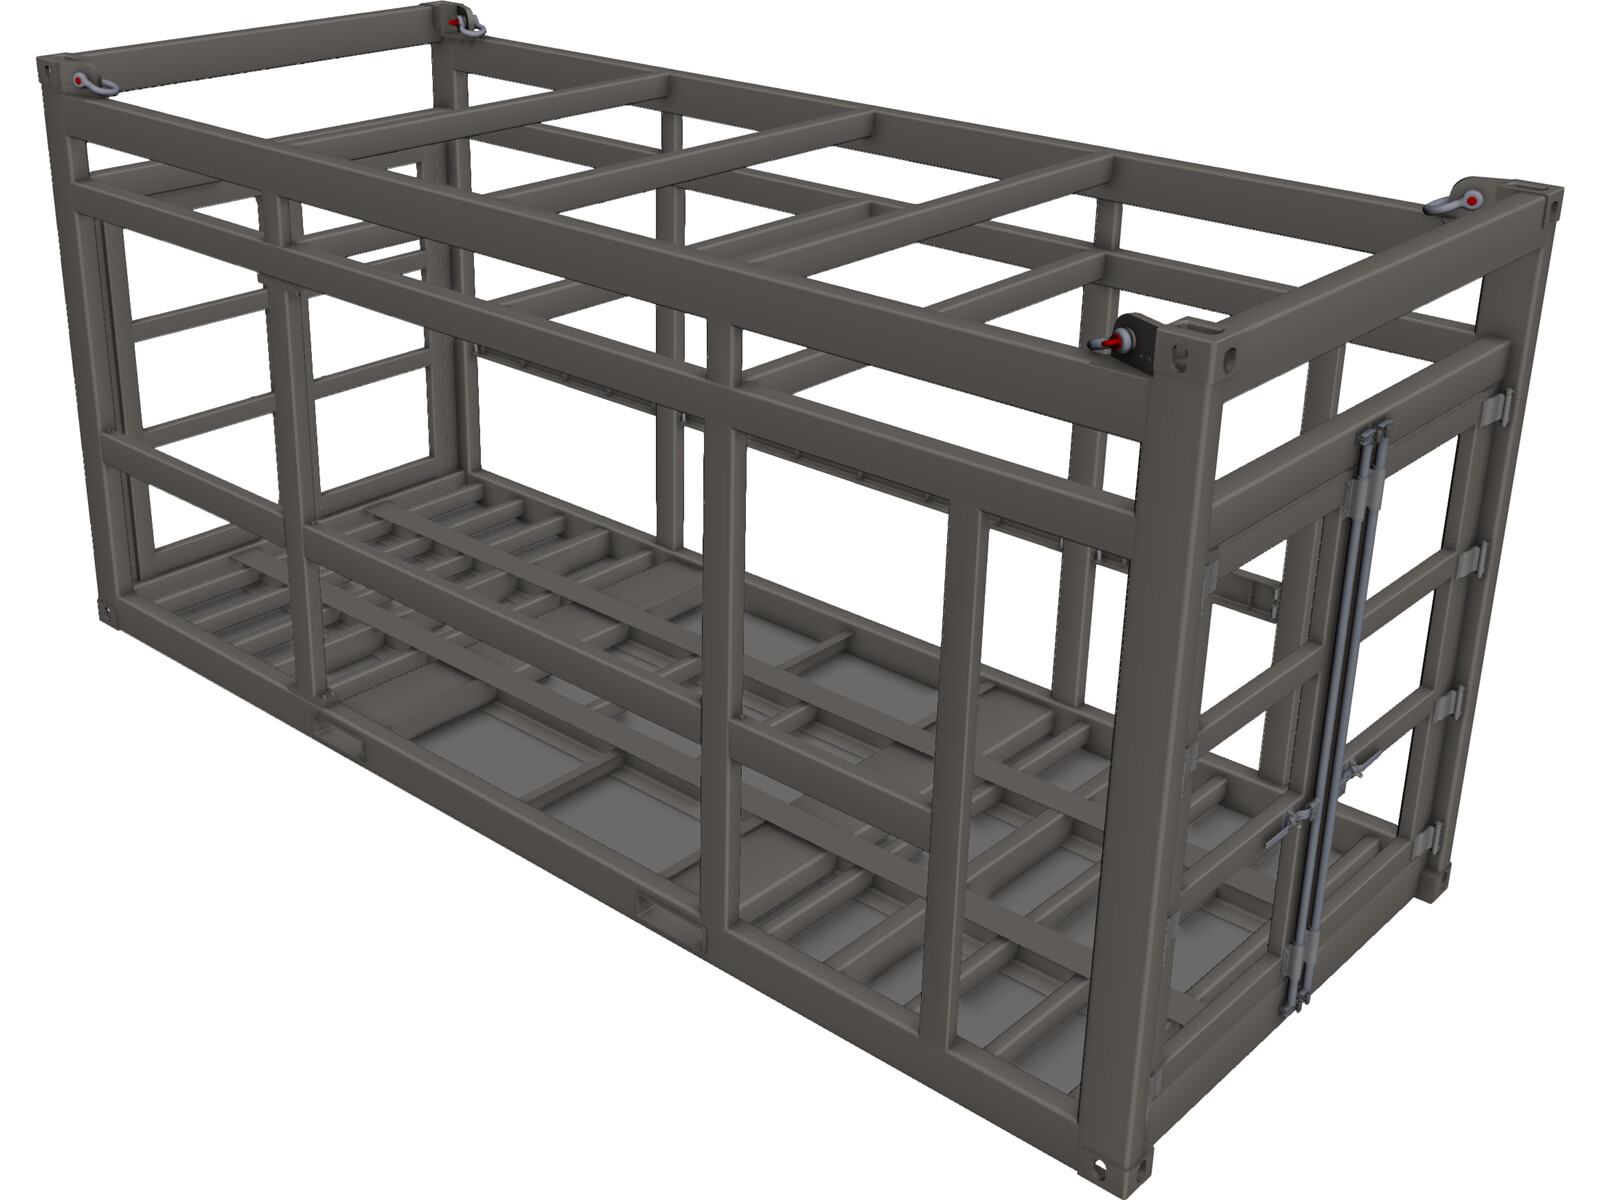 Offshore Container Frame 3D Model